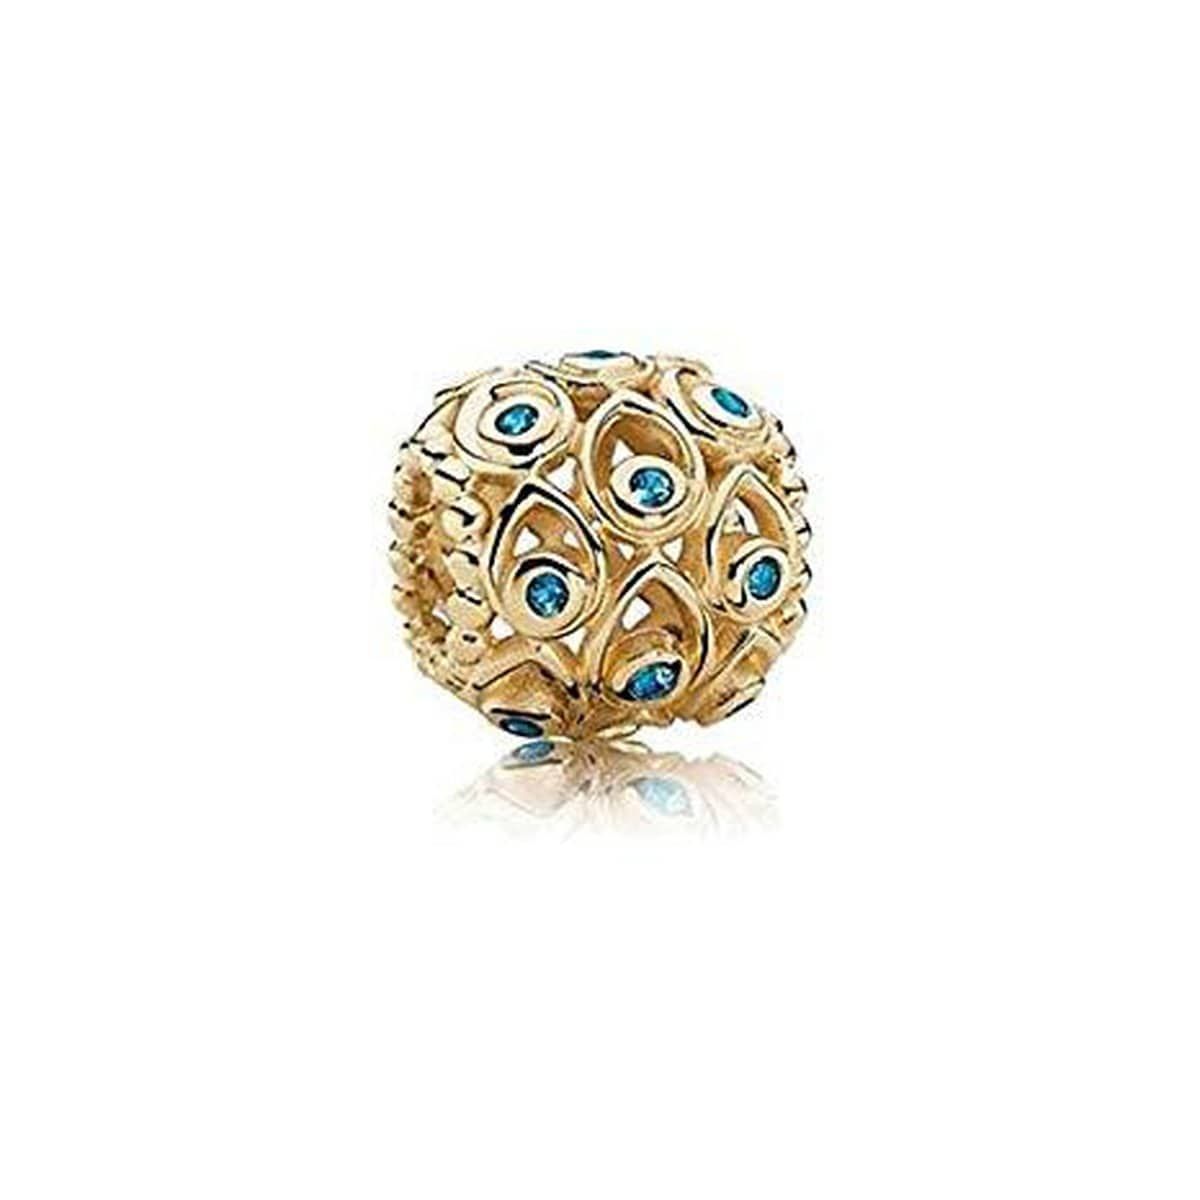 Ocean Treasures 14K Gold Charm - 750817TPP